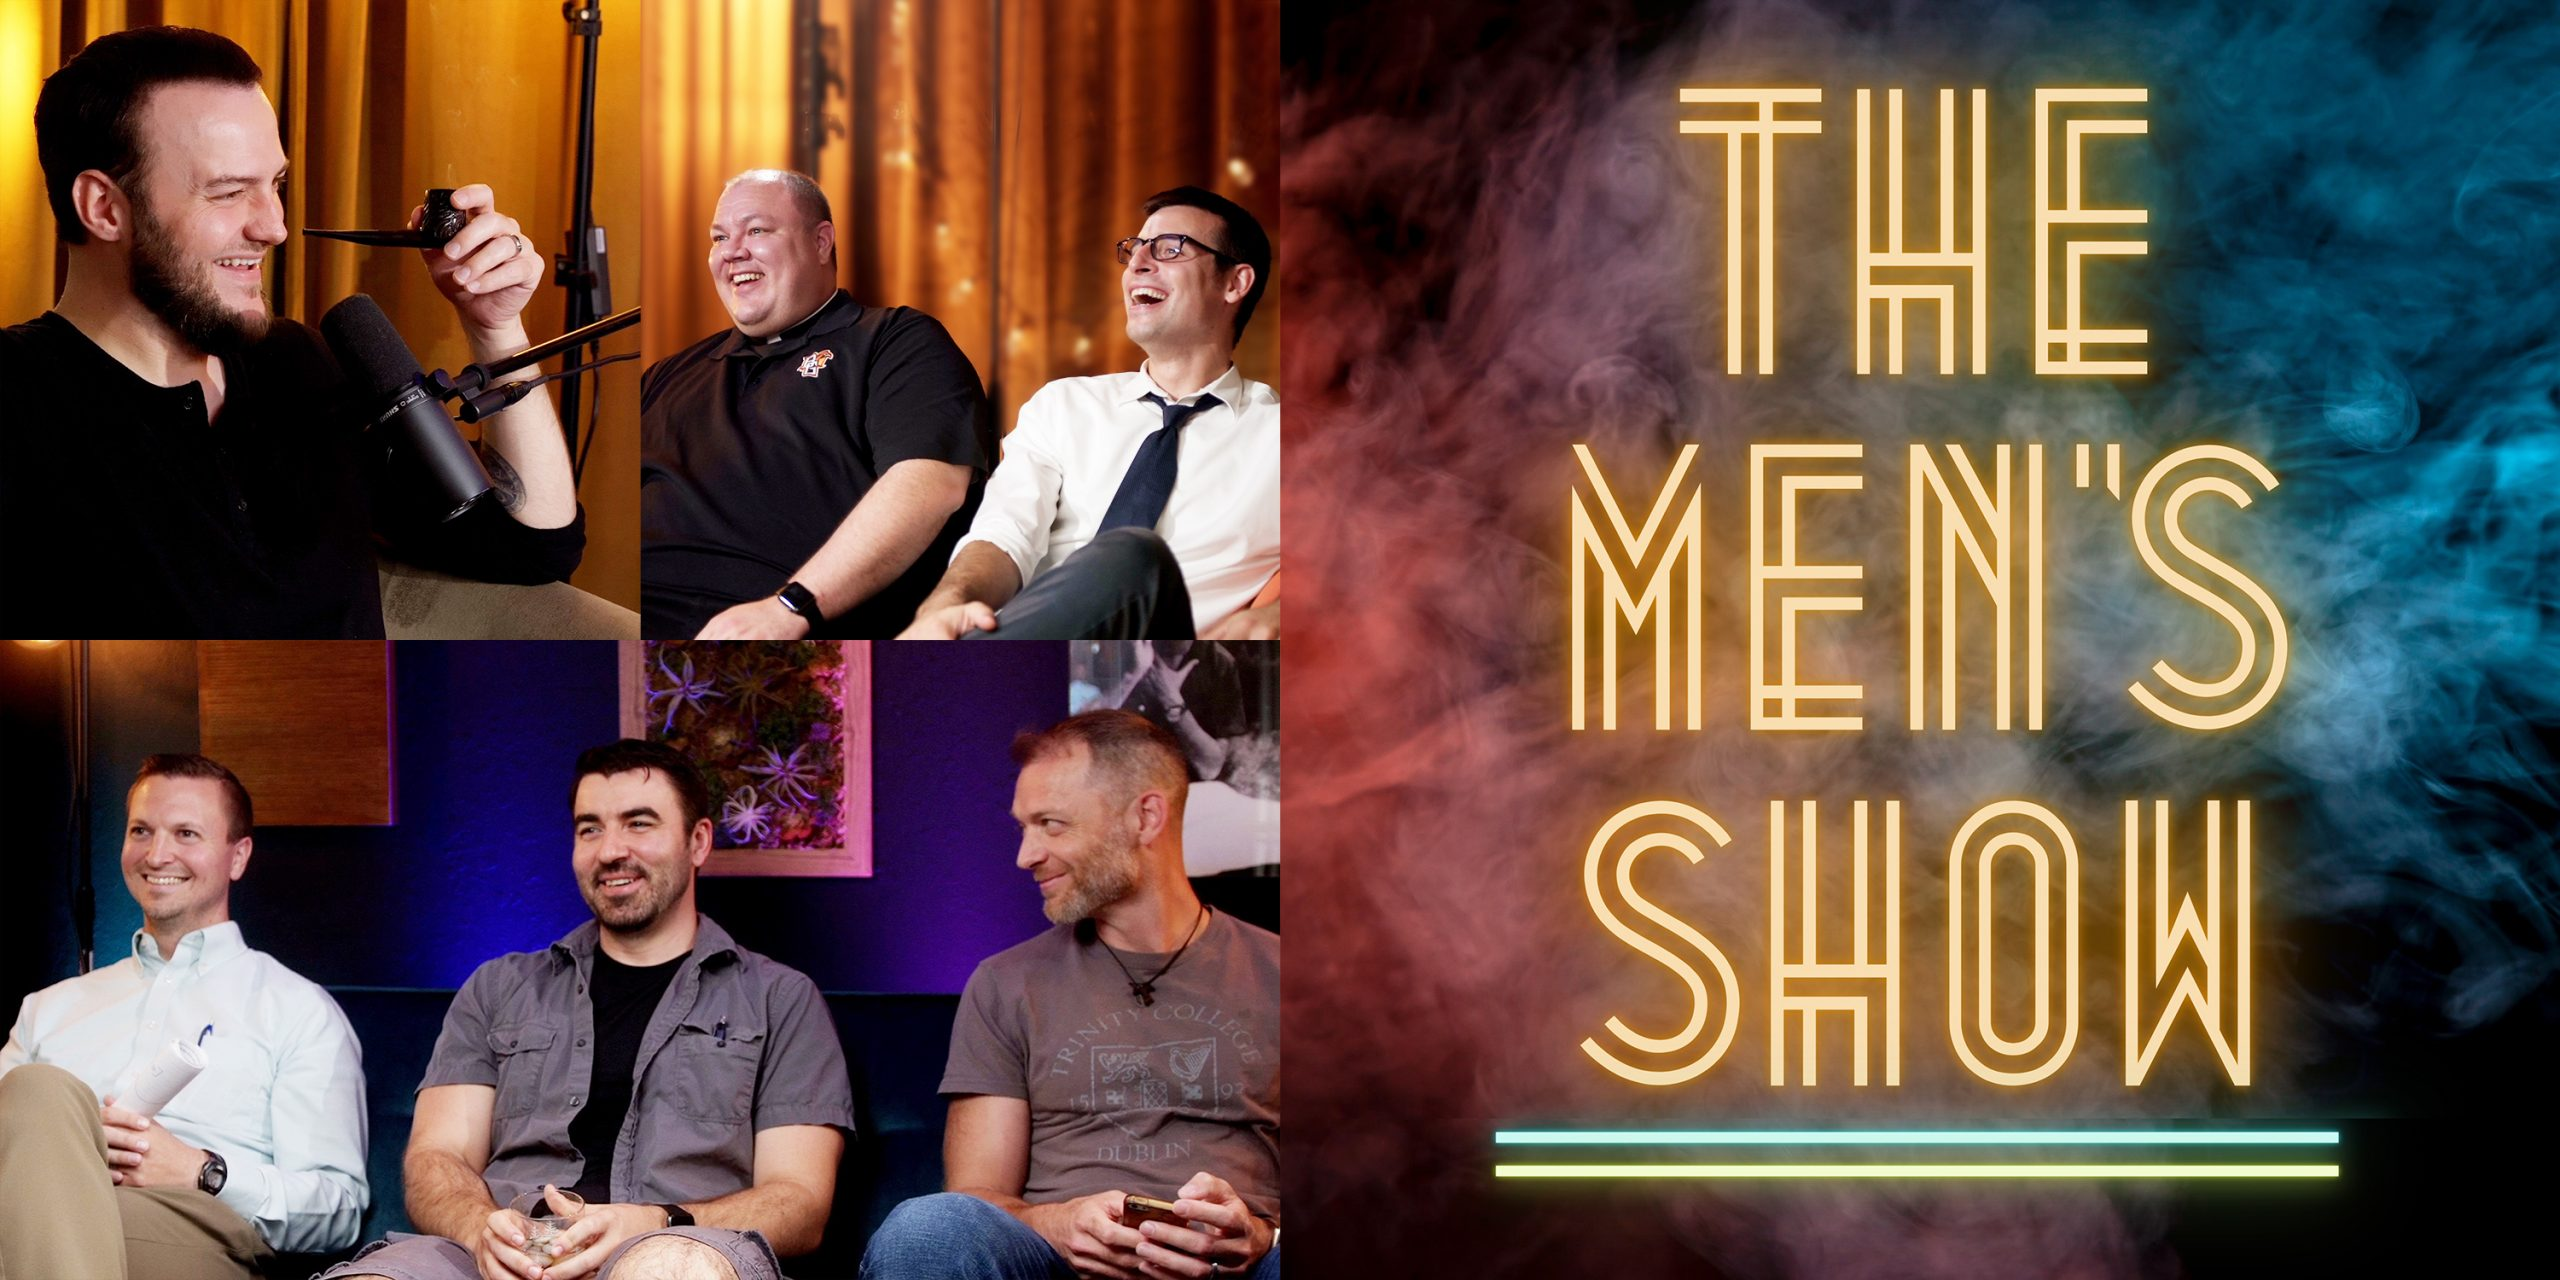 The Men's Show Podcast